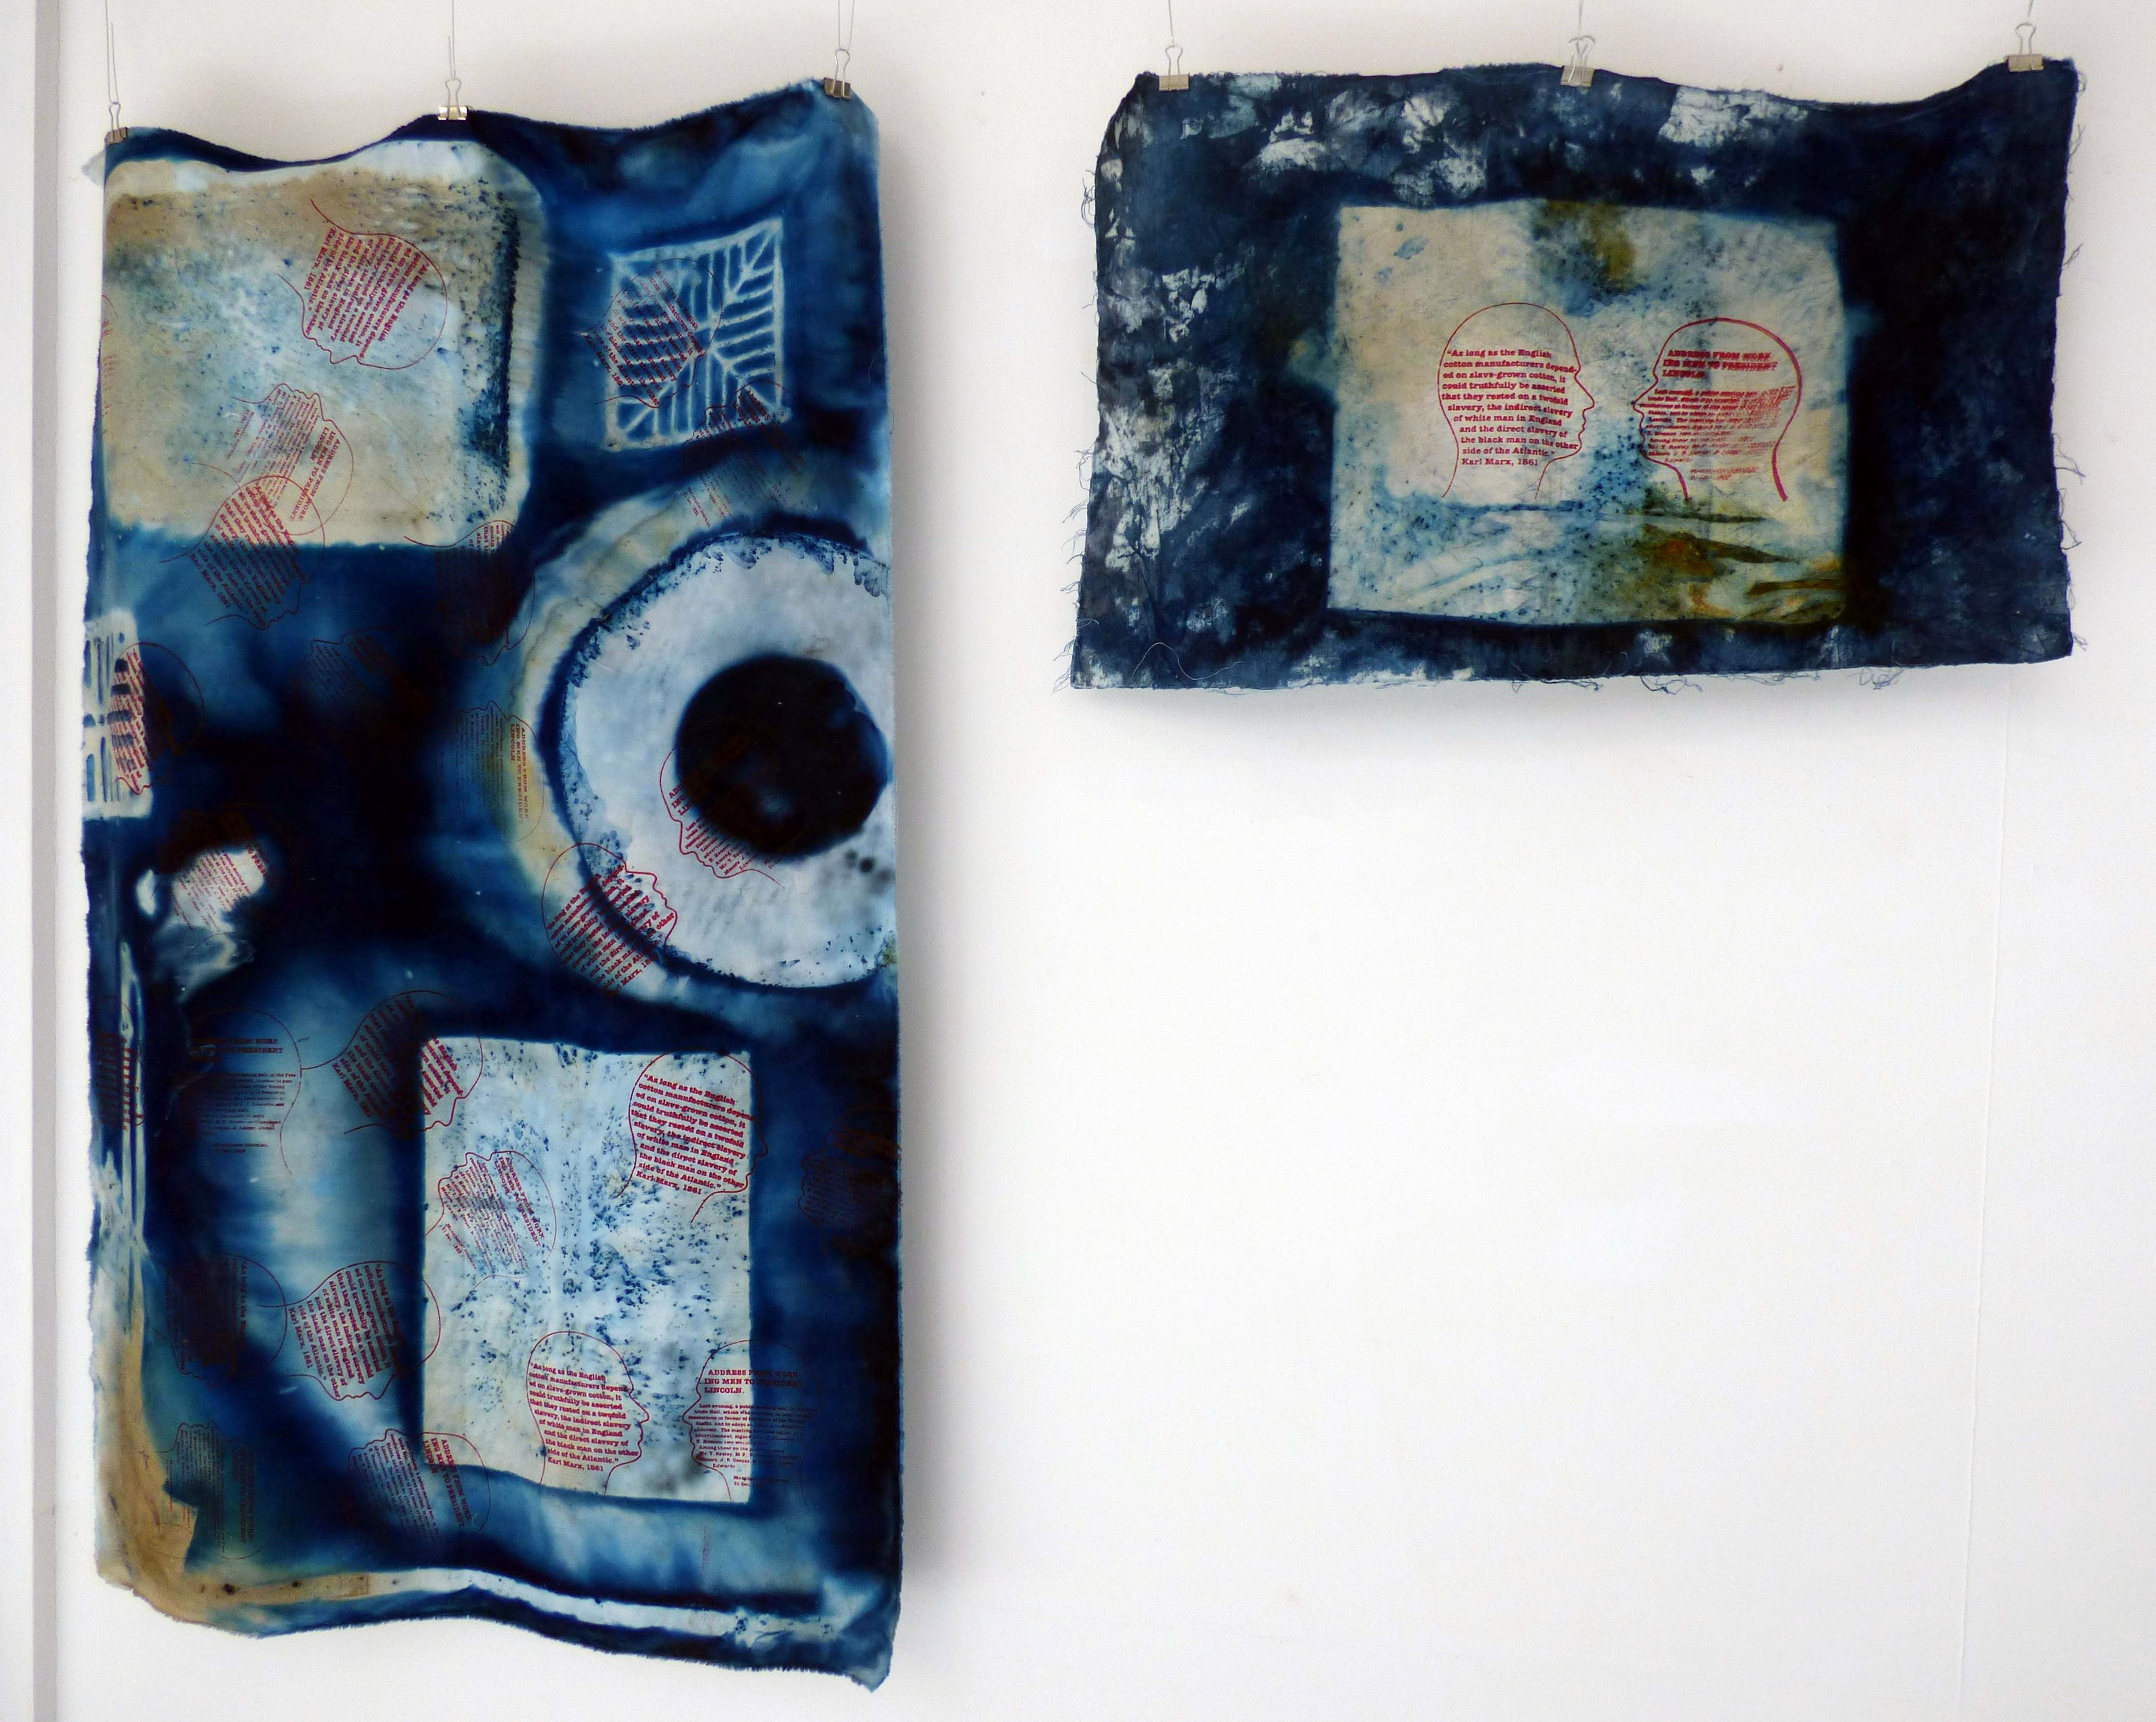 """HEAD SERIES I, II, III, IV and V by Susan Syddall, cyanotype on fabric and screen print, """"Synergy"""" exhibition by Preston Threads, July 2021"""